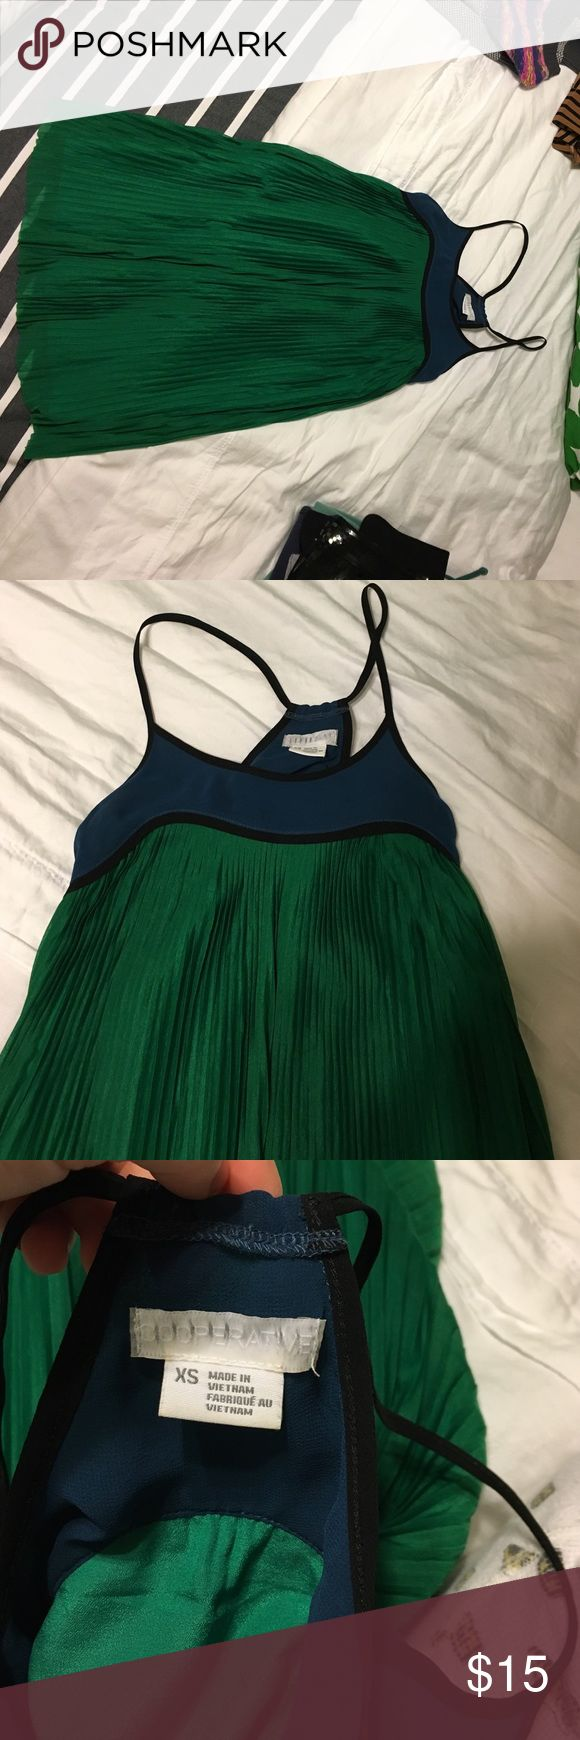 Green Knifepleat UO Cooperative Dress In perfect condition, wore twice, beautiful emerald green + blue + black, size XS, purchased from Urban Outfitters store, no stains/spots/damage Urban Outfitters Dresses Mini